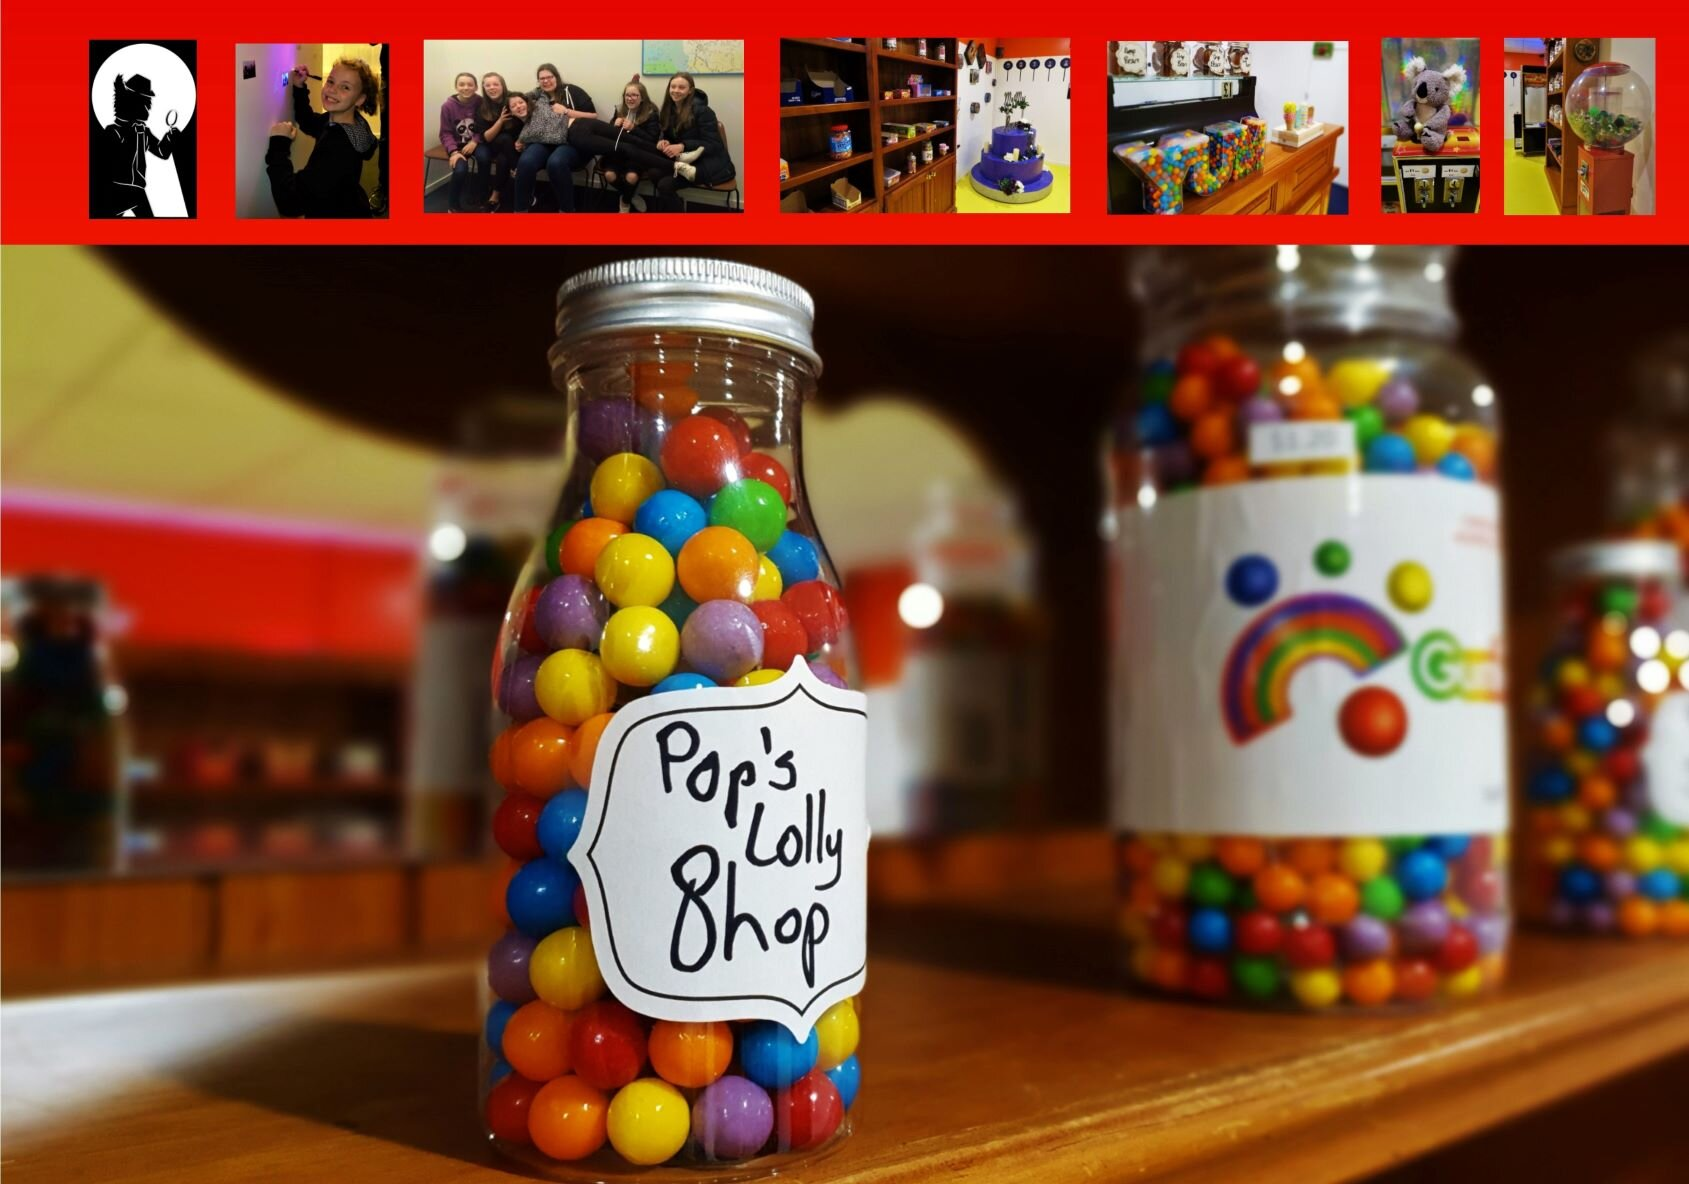 THE LOLLY SHOP - &Various mini games and challengesFacility hire for 3 HoursNibbles & Soft-drink2 Game Masters for the entire timeSuit 10-24 Players$55 PER PERSON